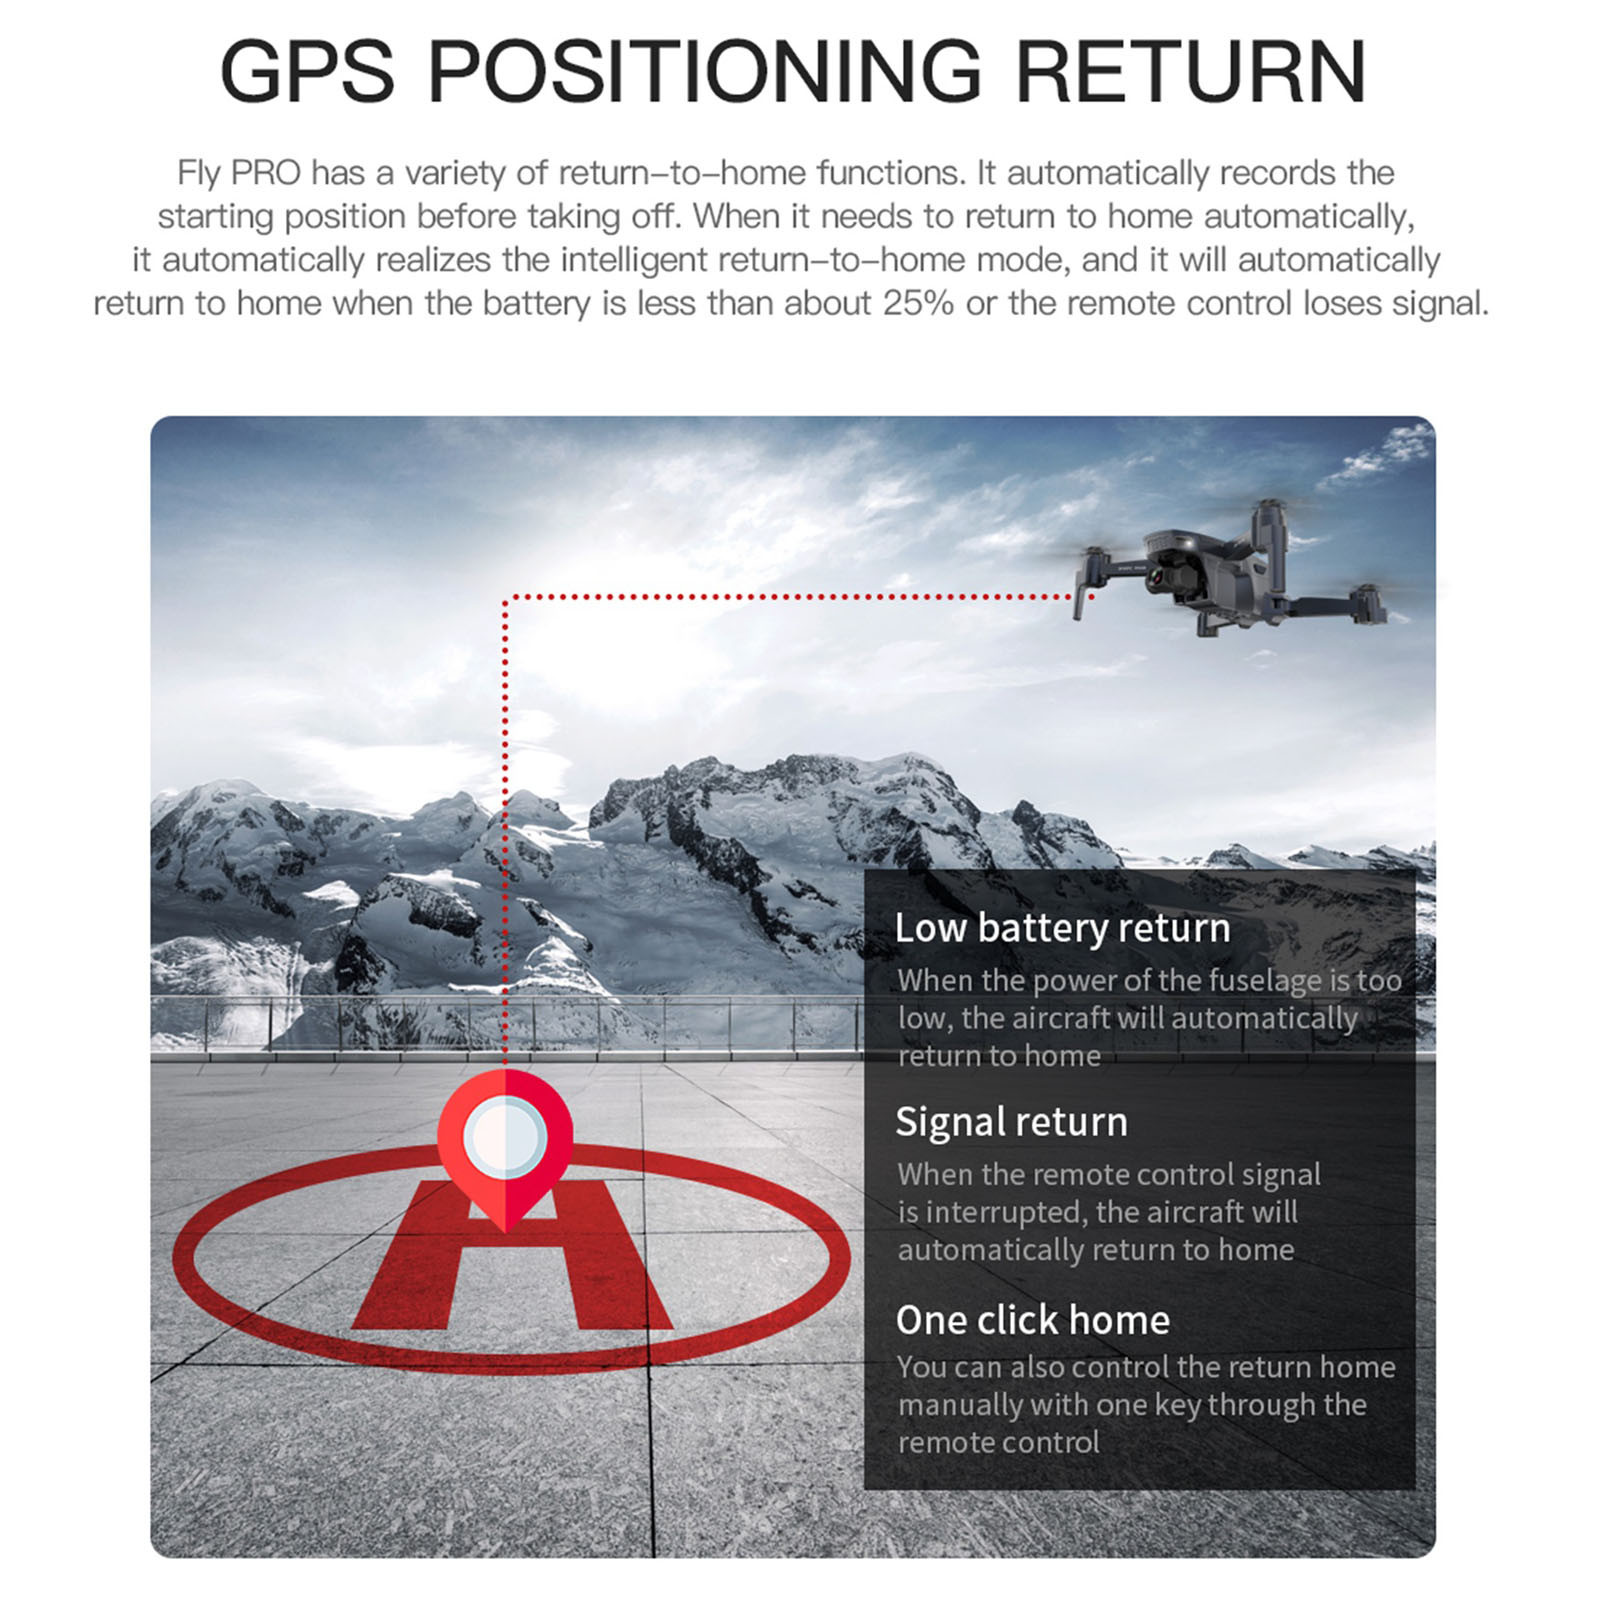 H0d388e0bfe96426bbe004c31dd03f620O - 2020 New Sg907 Pro 5g Wifi Drone 2-axis Gimbal 4k Camera Wifi Gps Rc Drone Toy Rc Four-axis Professional Folding Camera Drones